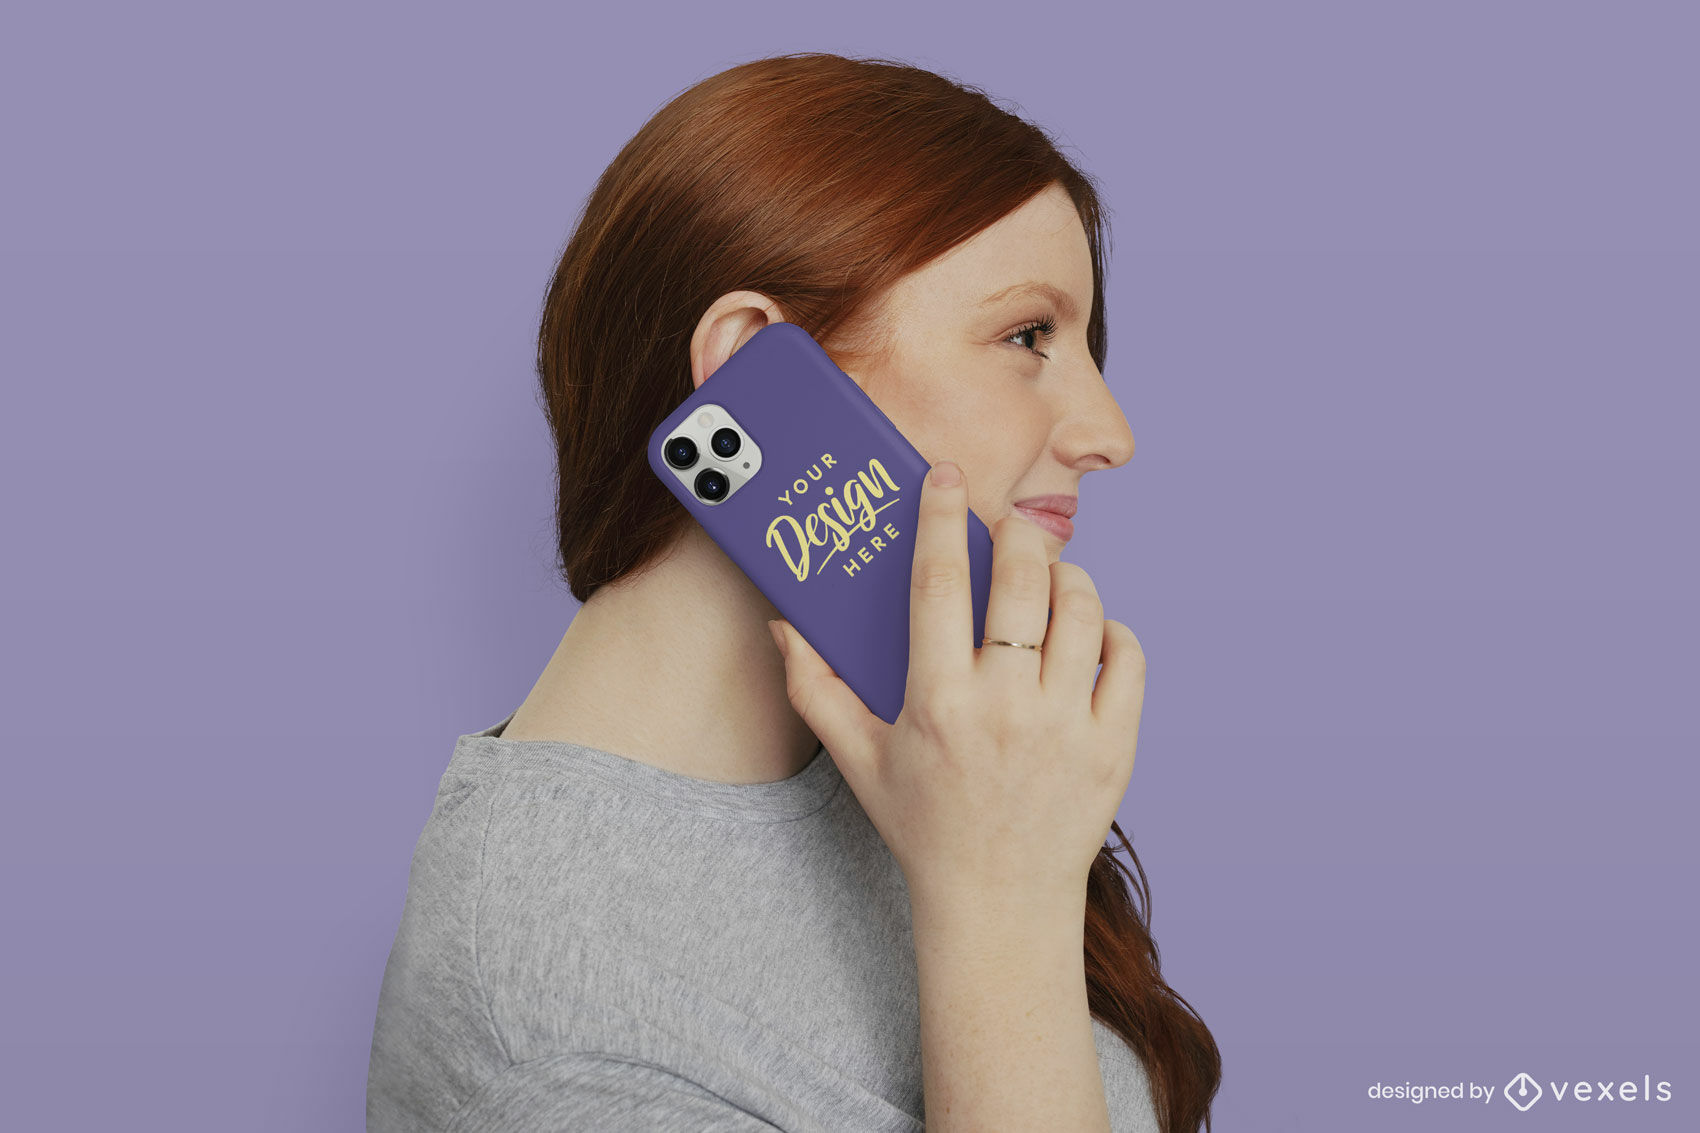 Redhead girl solid background phone case mockup